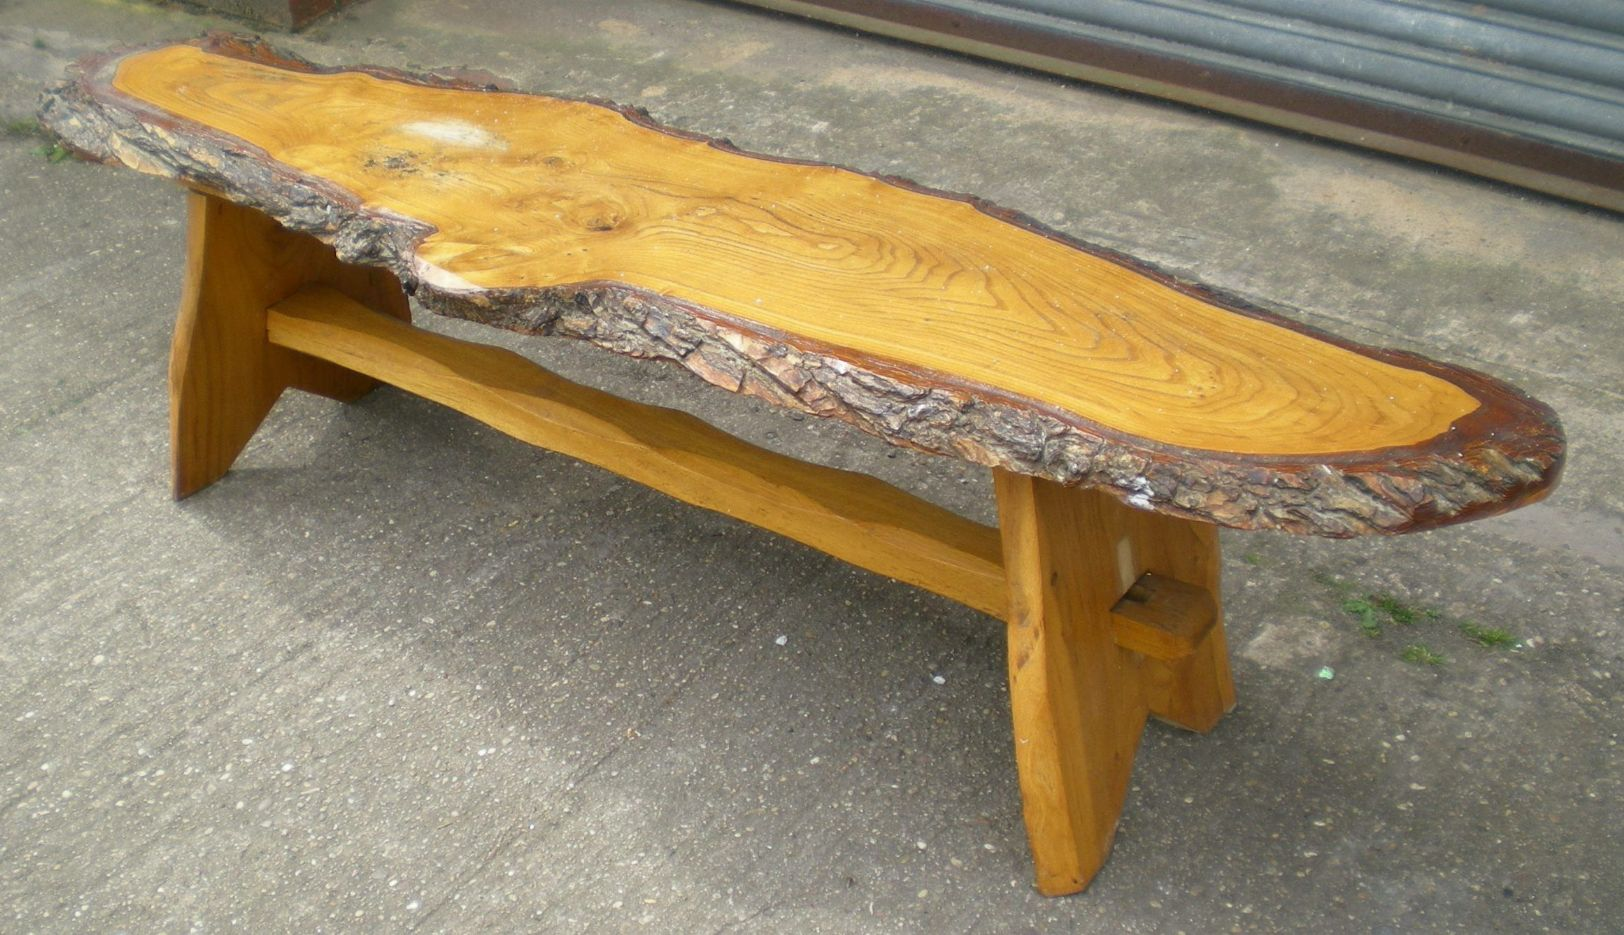 Rustic Look Long Log Style Coffee Table : rustic look long log style coffee table 3 2398 p from www.harrisonantiquefurniture.co.uk size 1624 x 935 jpeg 260kB